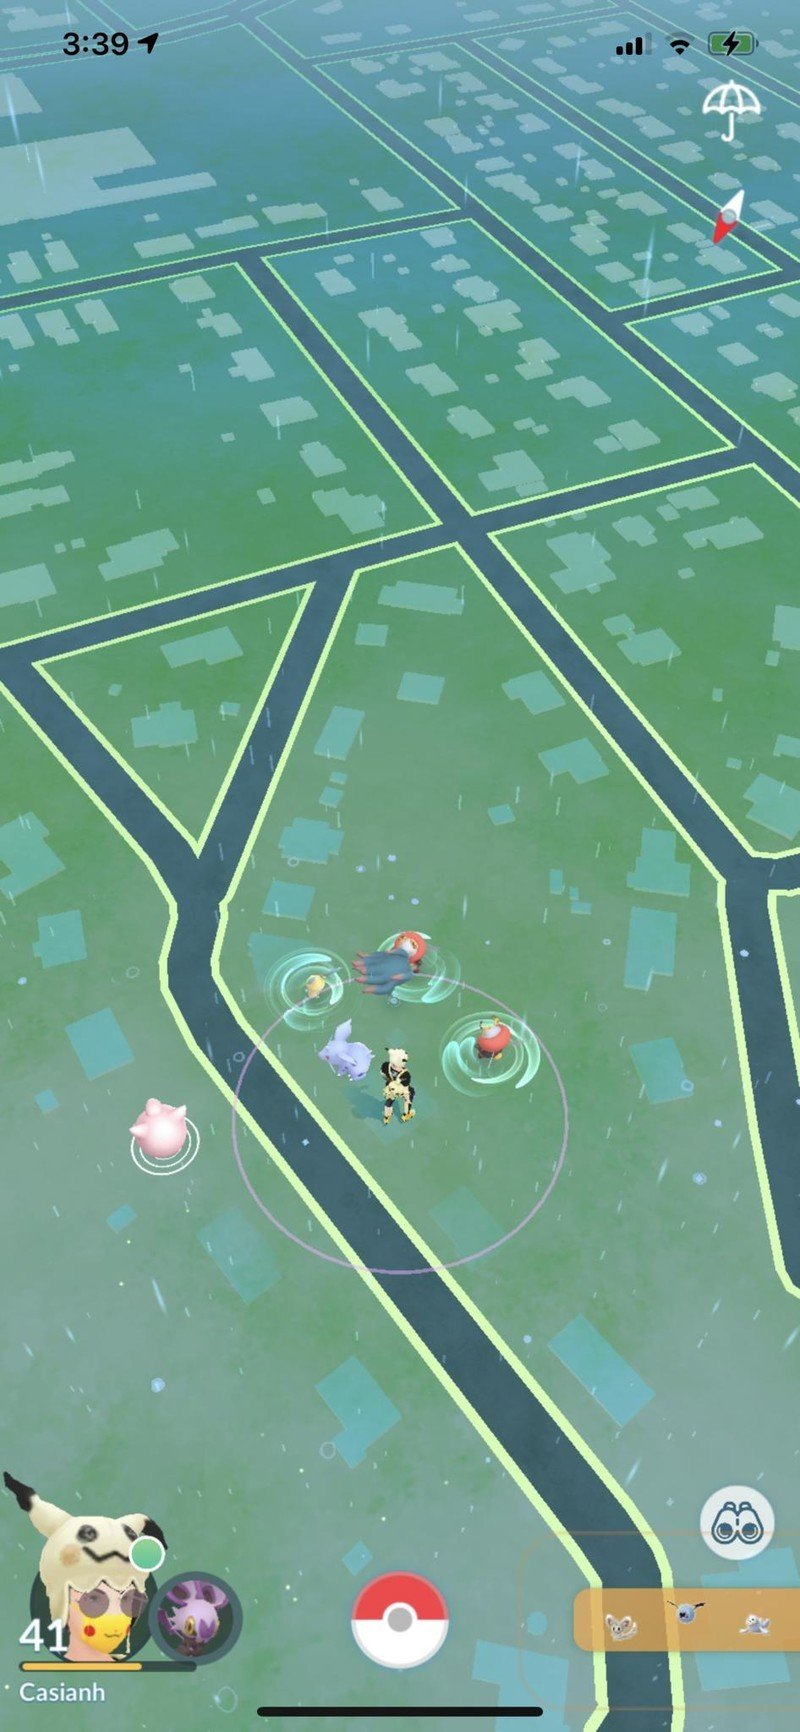 Pokemon Go Pokeraid Raid Invitation in Sightings